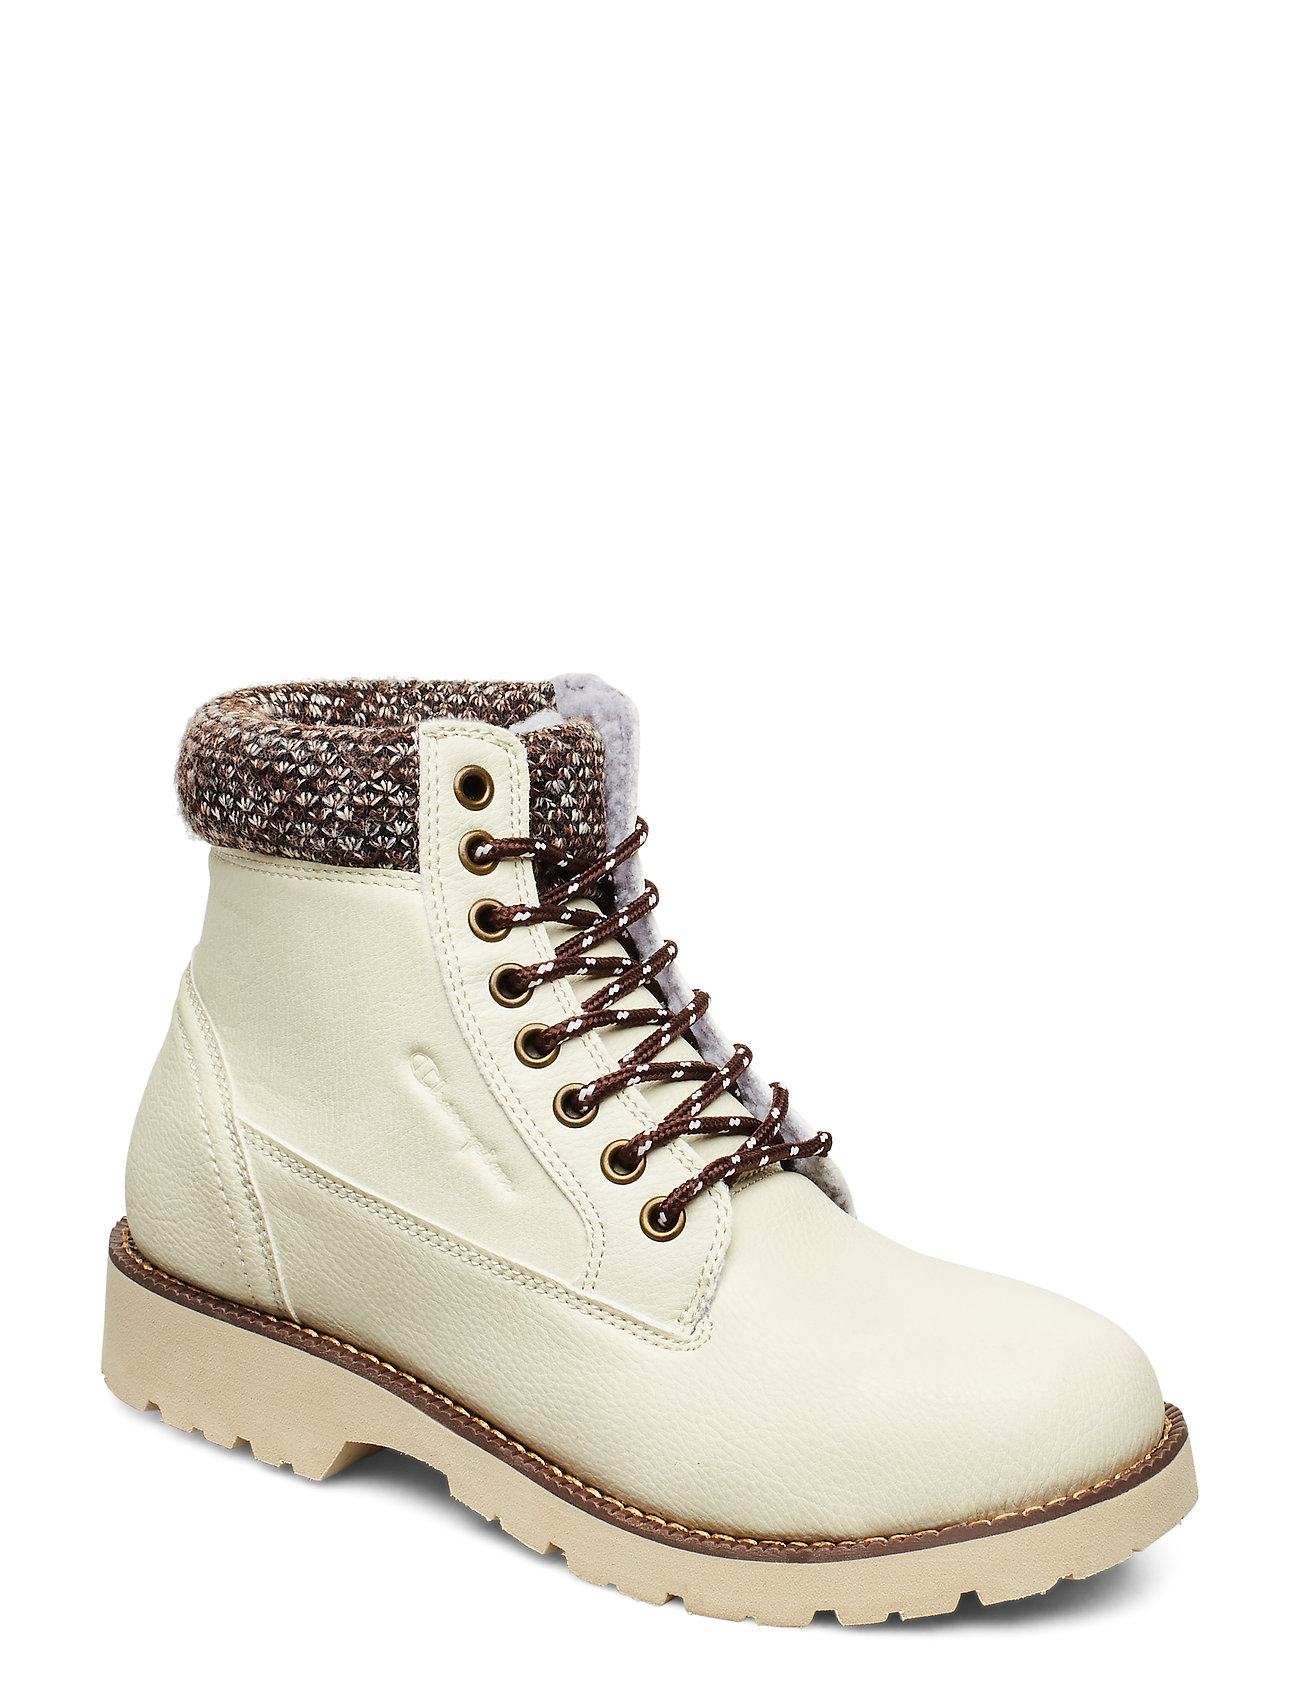 Image of High Cut Shoe Upstate Shoes Boots Ankle Boots Ankle Boots Flat Heel Beige Champion (3374003581)